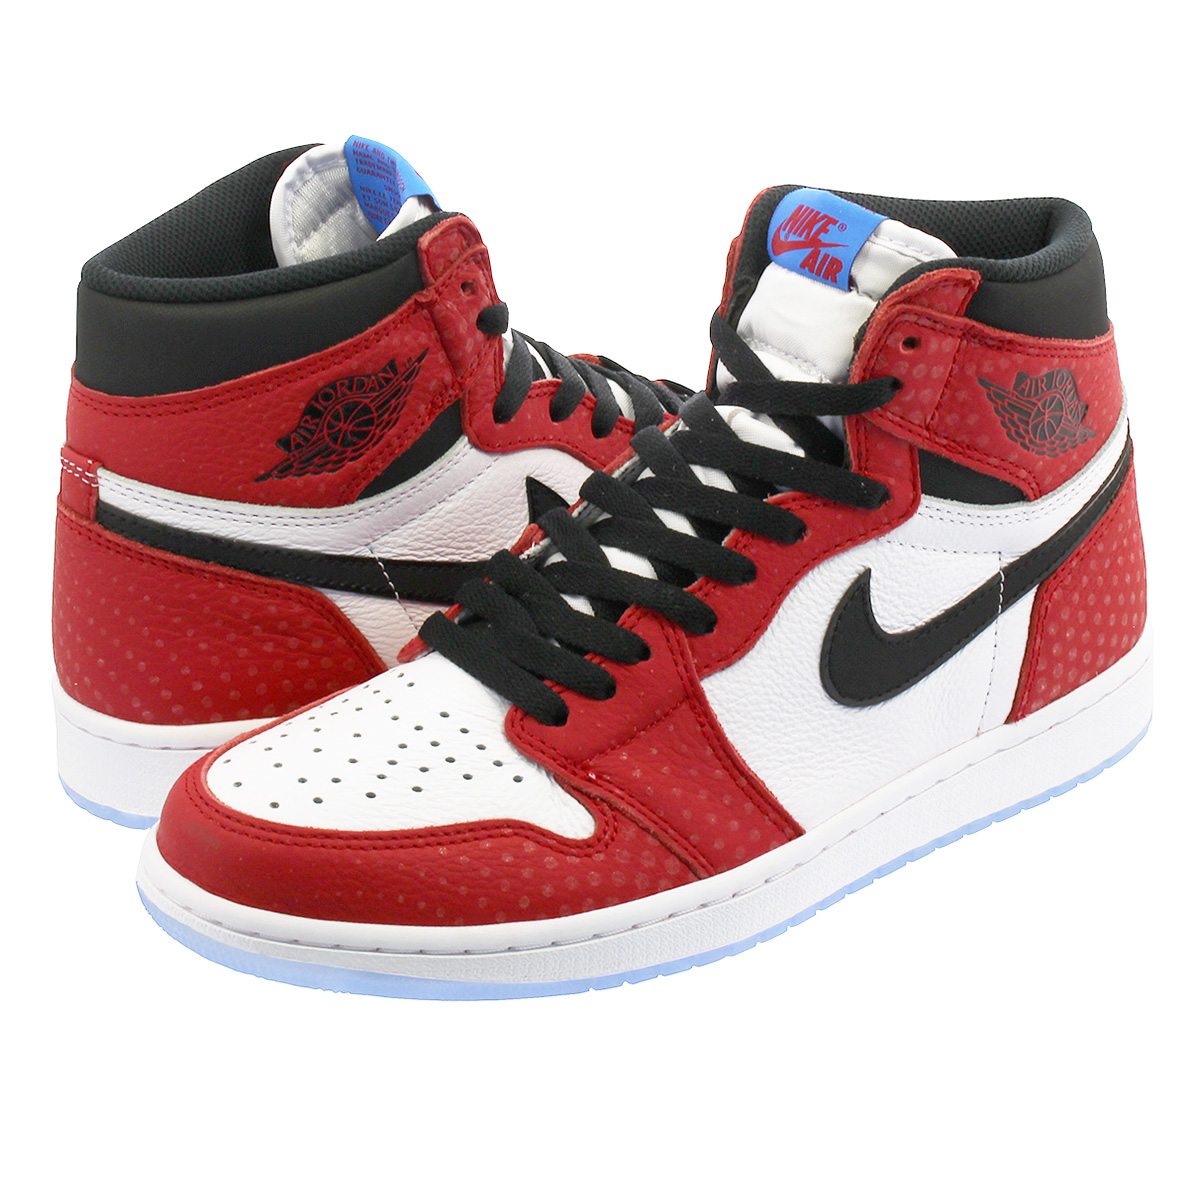 new style 6ad83 44504 NIKE AIR JORDAN 1 RETRO HIGH OG Nike Air Jordan 1 nostalgic high OG GYM  RED/WHITE/PHOTO BLUE/BLACK 555,088-602